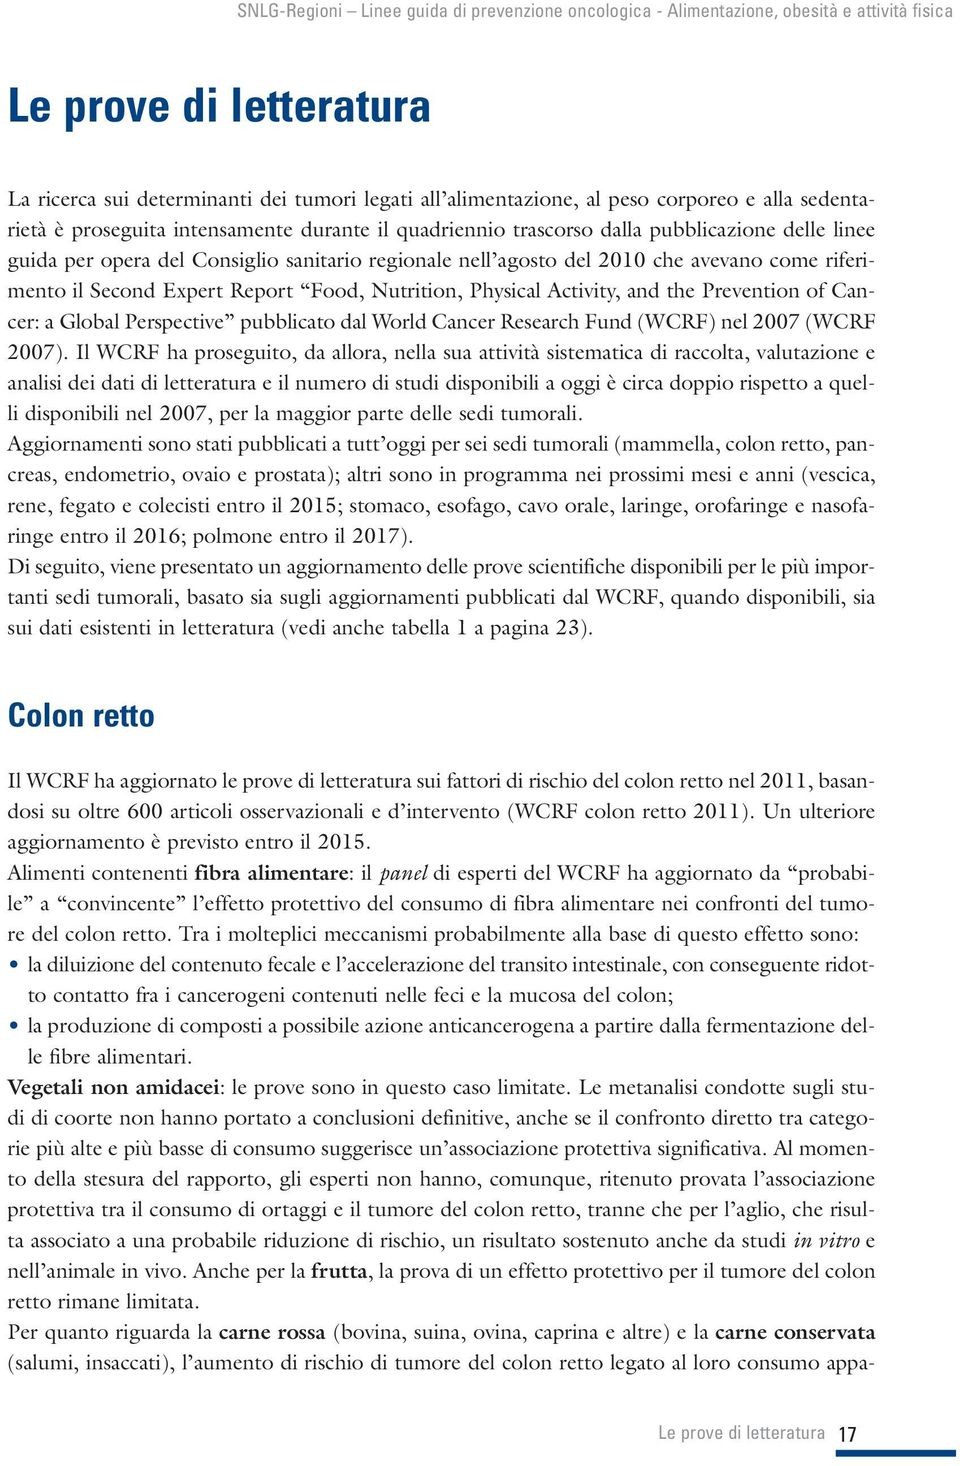 Prevention of Cancer: a Global Perspective pubblicato dal World Cancer Research Fund (WCRF) nel 2007 (WCRF 2007).